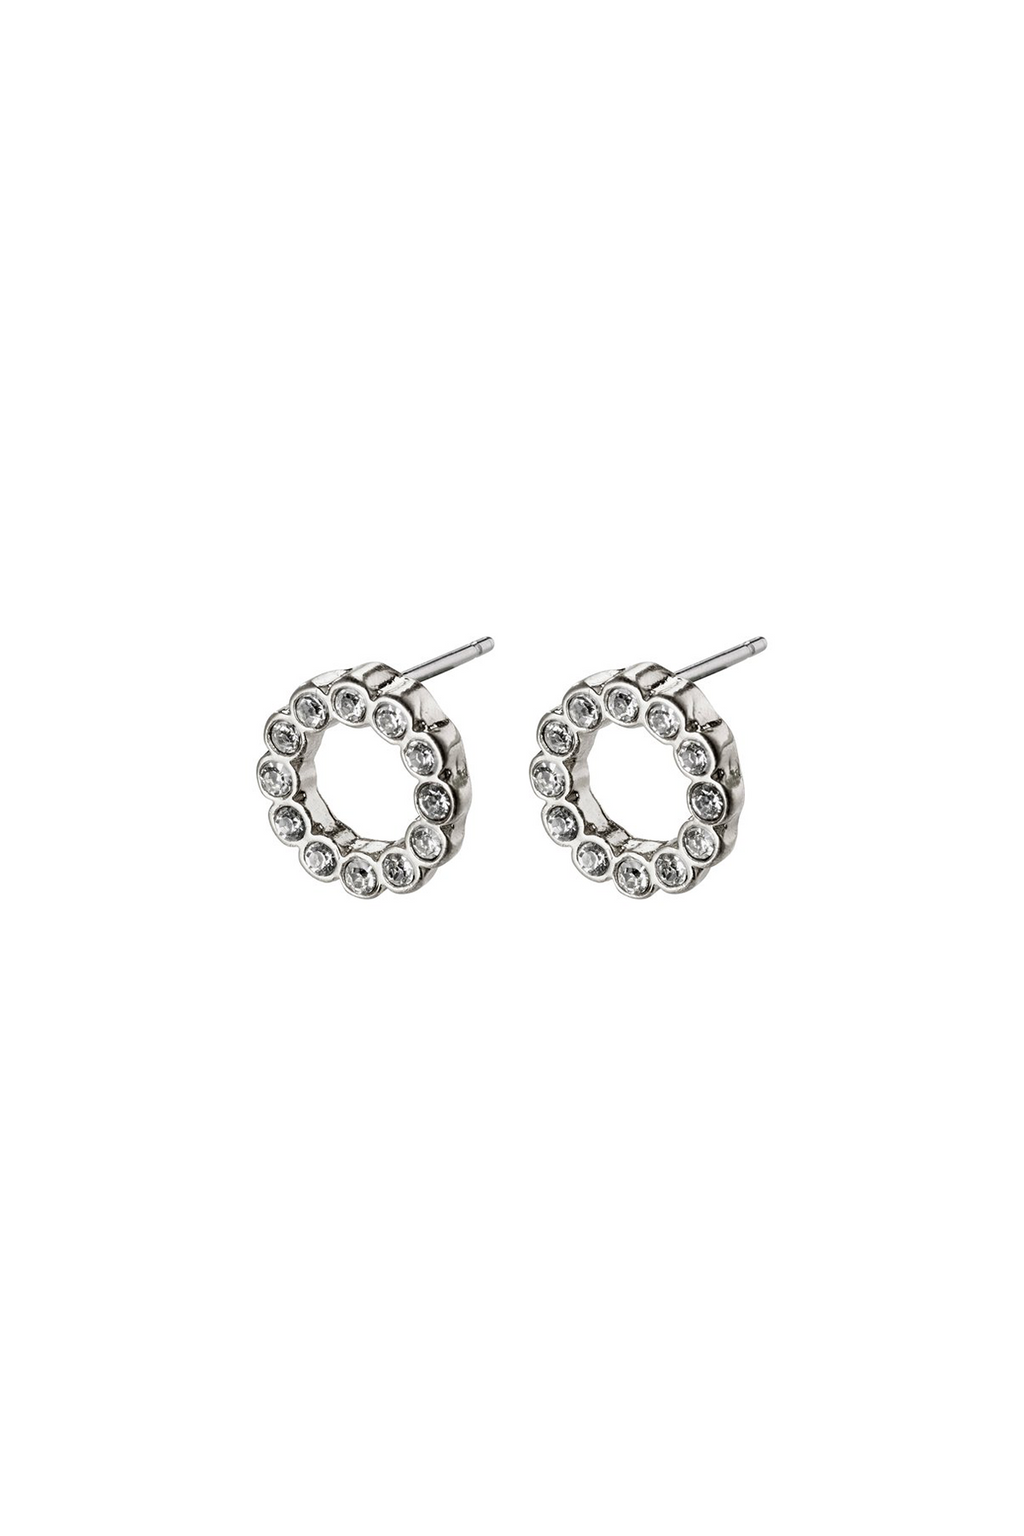 MALIN EARRINGS